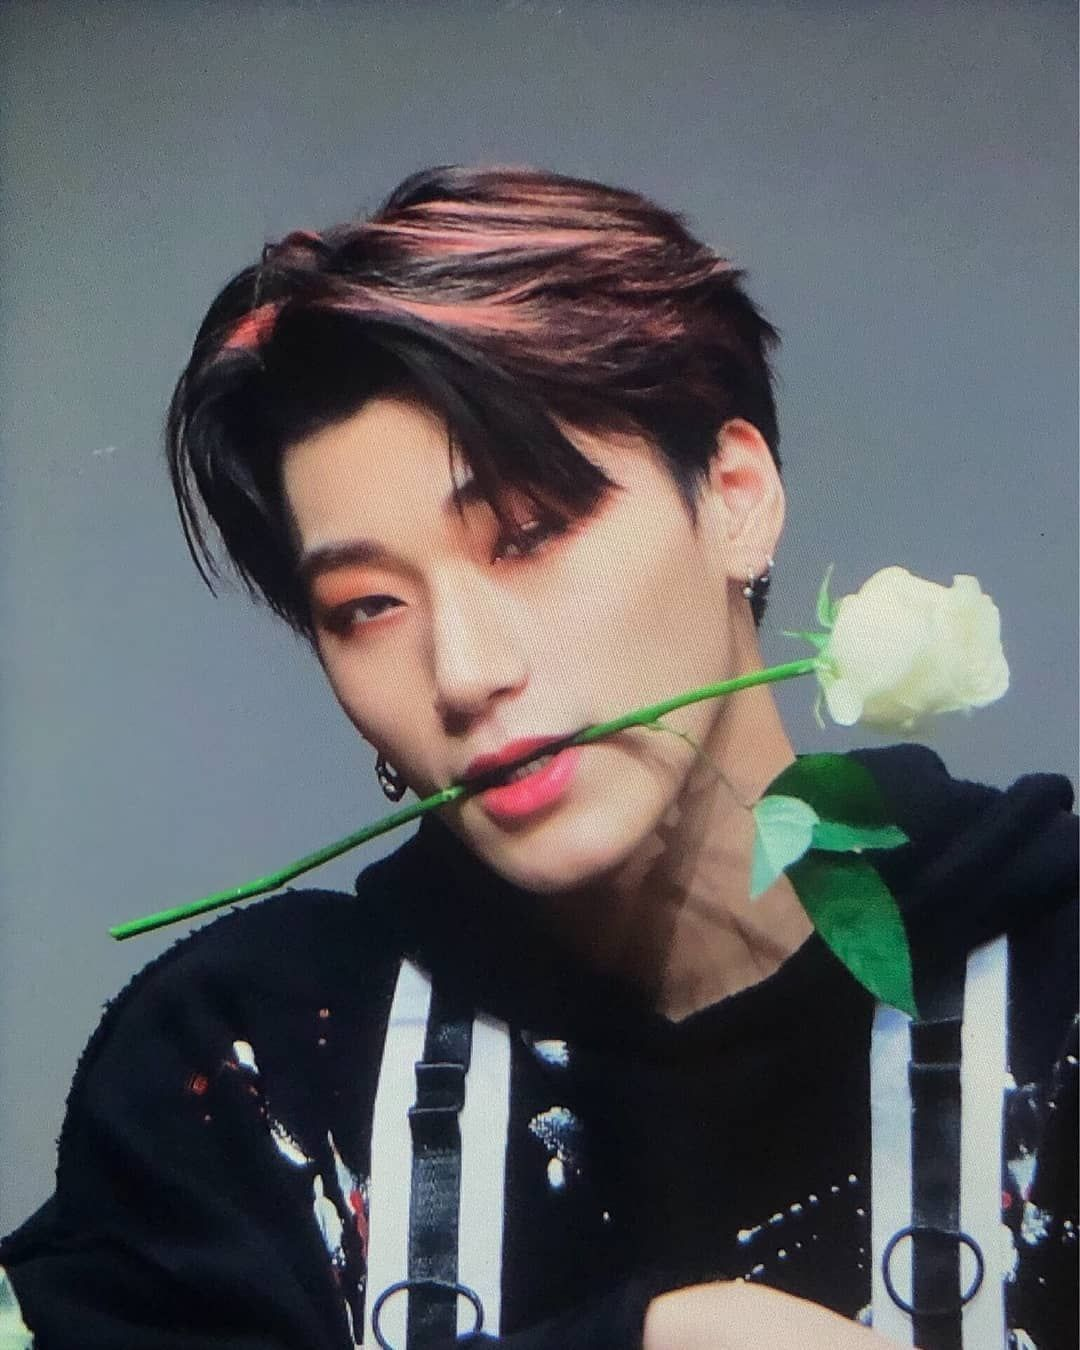 Choi Sanjook San Was Born On 10 July 1999 In Namhae South Gyeongsan South Korea Ateez Choi San Is A Pop Singer And Popu San Photography Subjects Kpop Idol